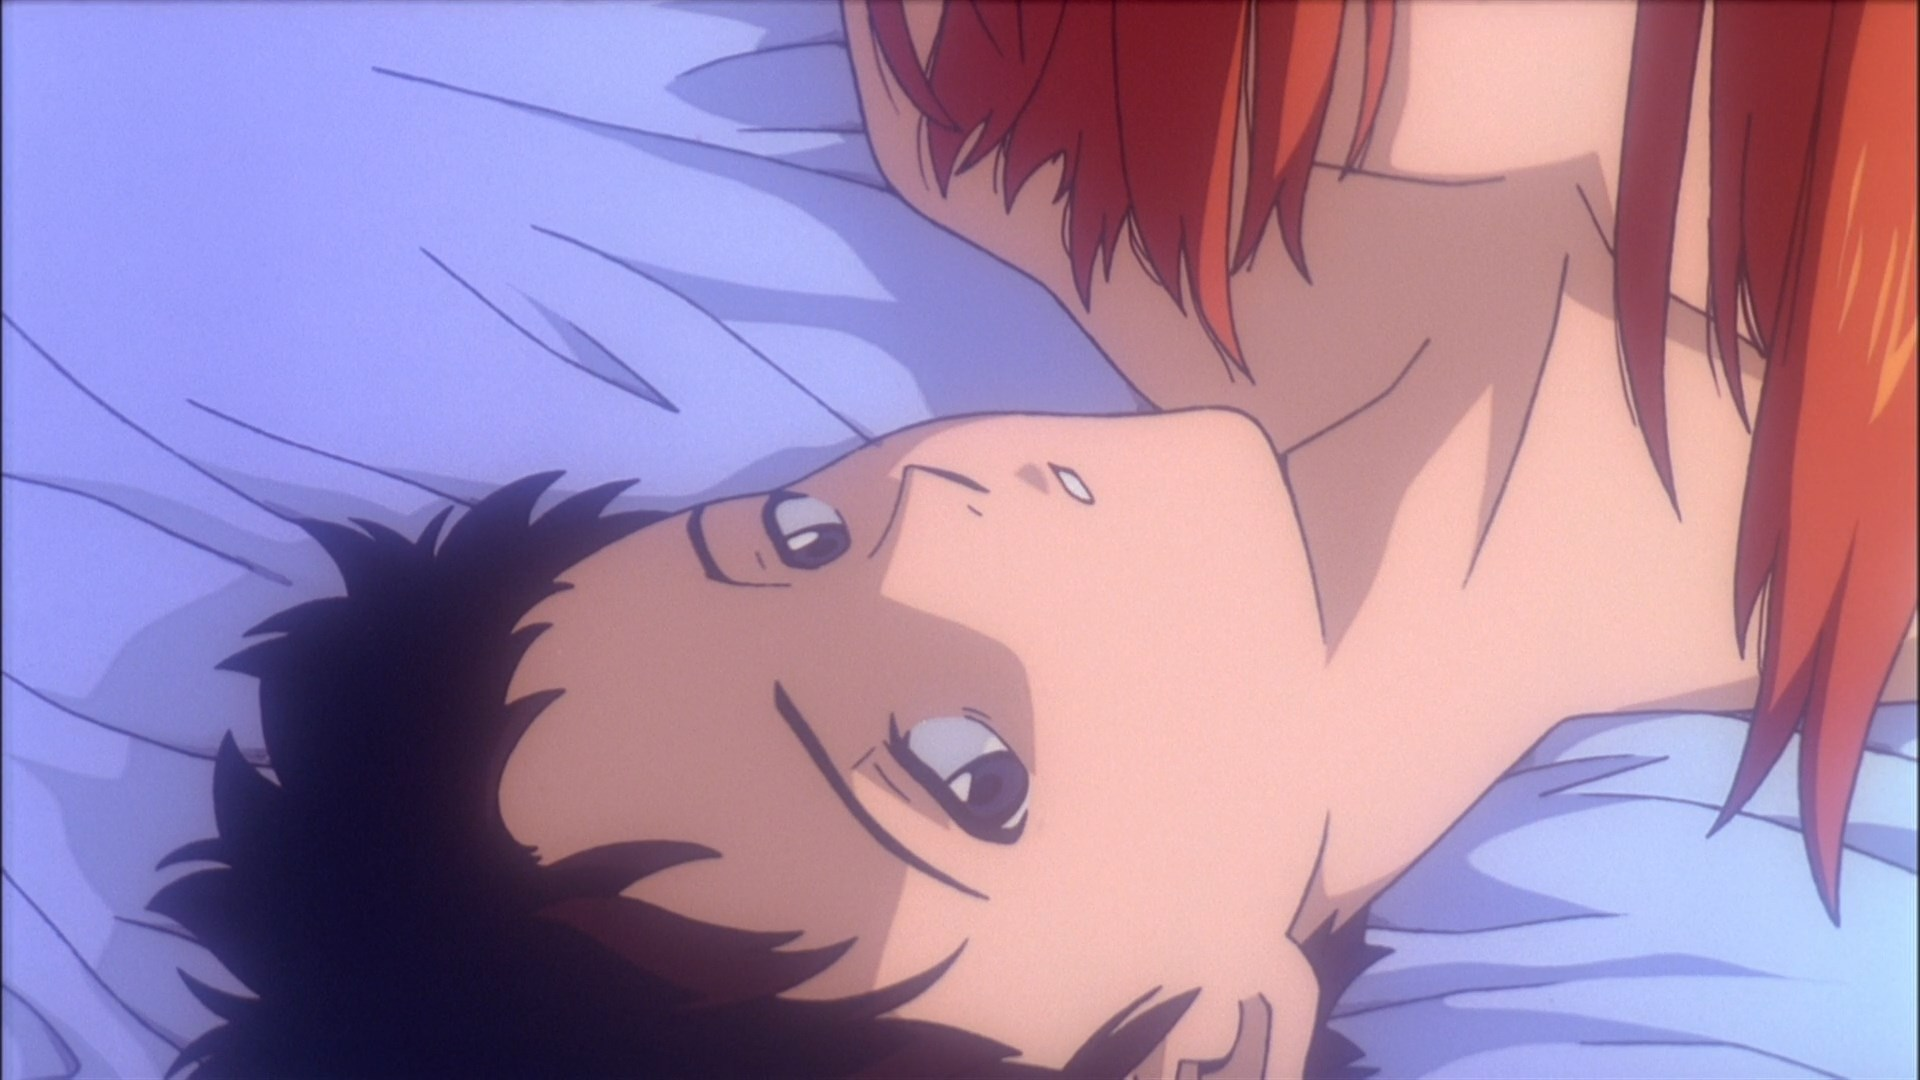 The human instrumentality project hentai